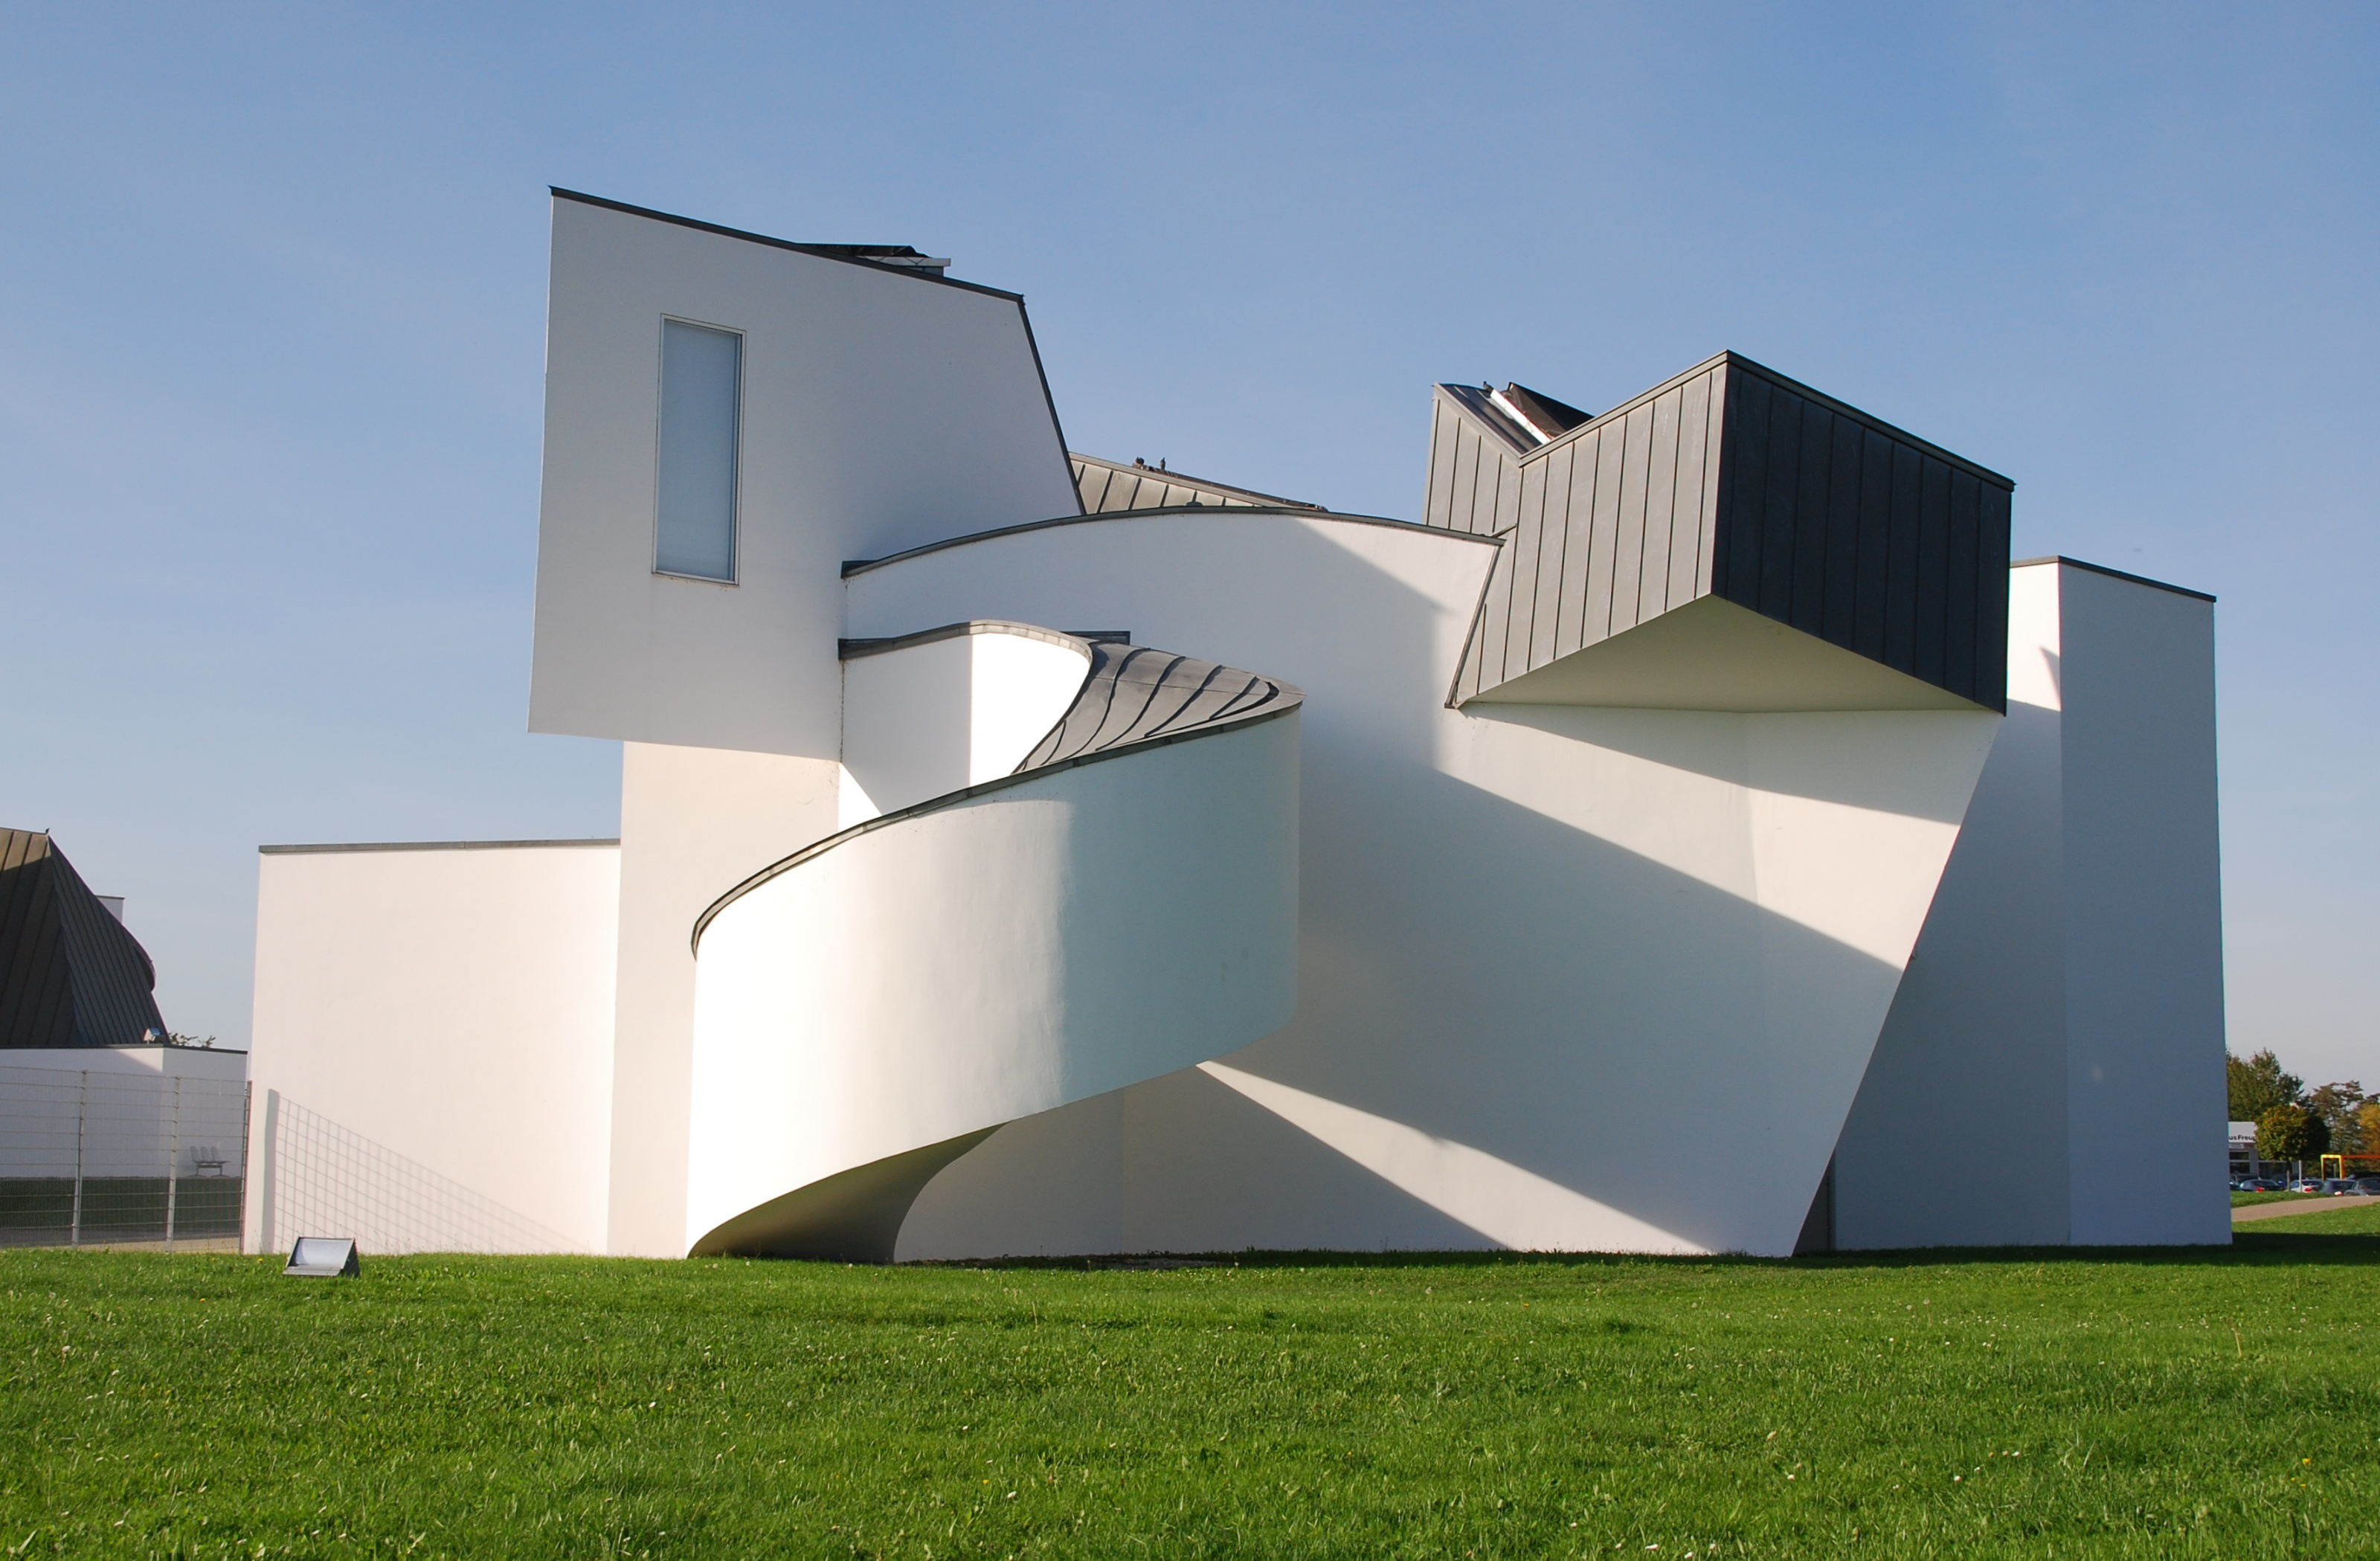 Le vitra design museum architecte frank o gehry